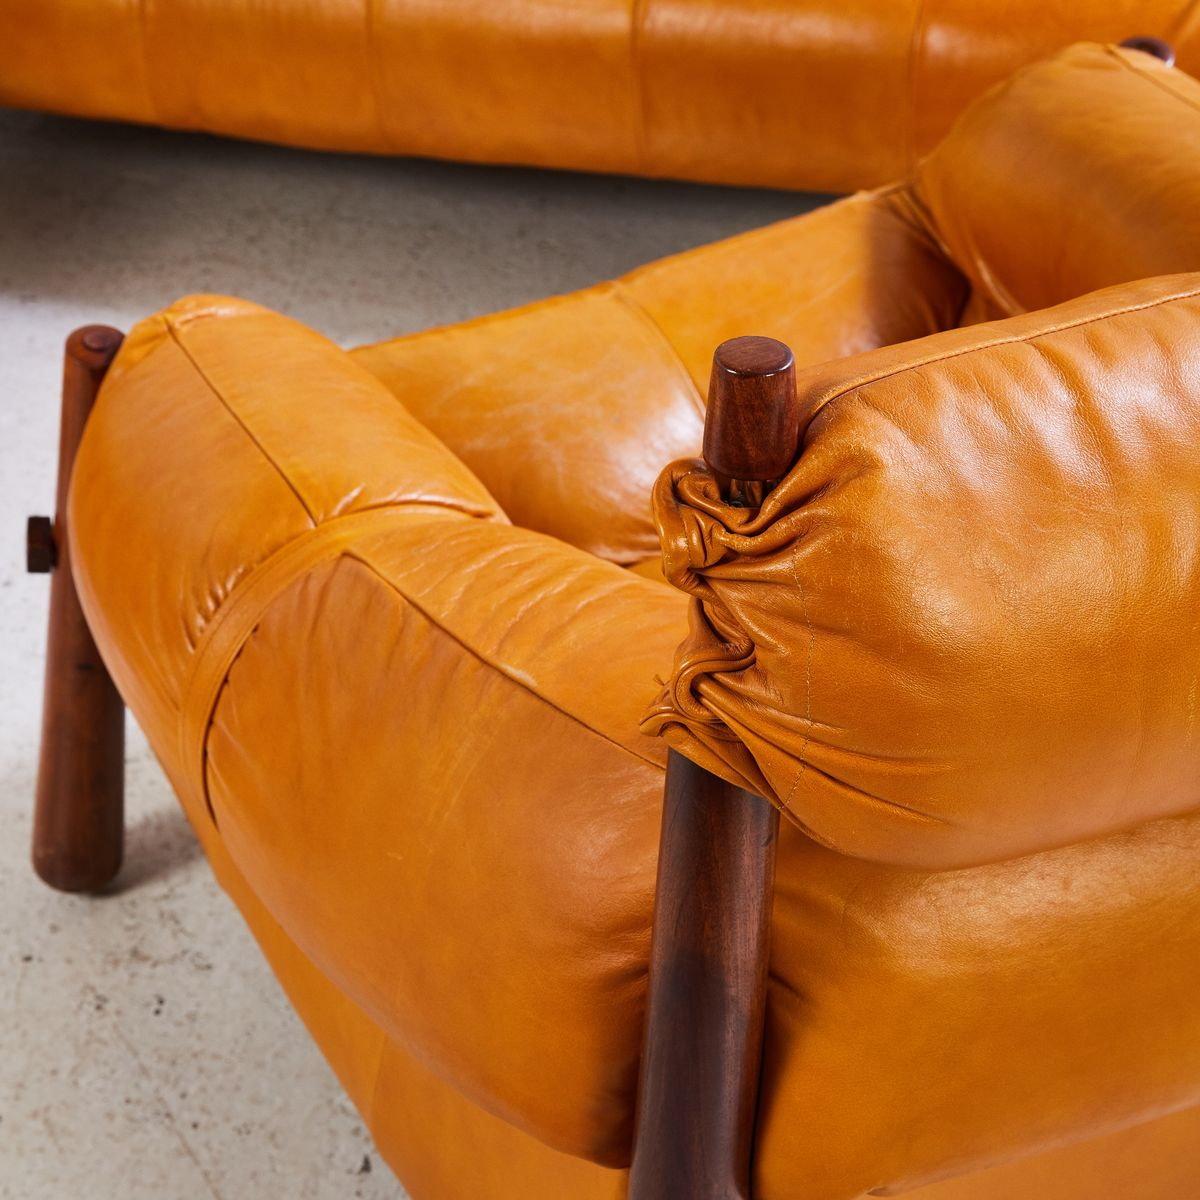 Vintage Leather Seating Group by Percival Lafer for sale  : vintage leather seating group by percival lafer 6 from www.pamono.com size 1200 x 1200 jpeg 123kB